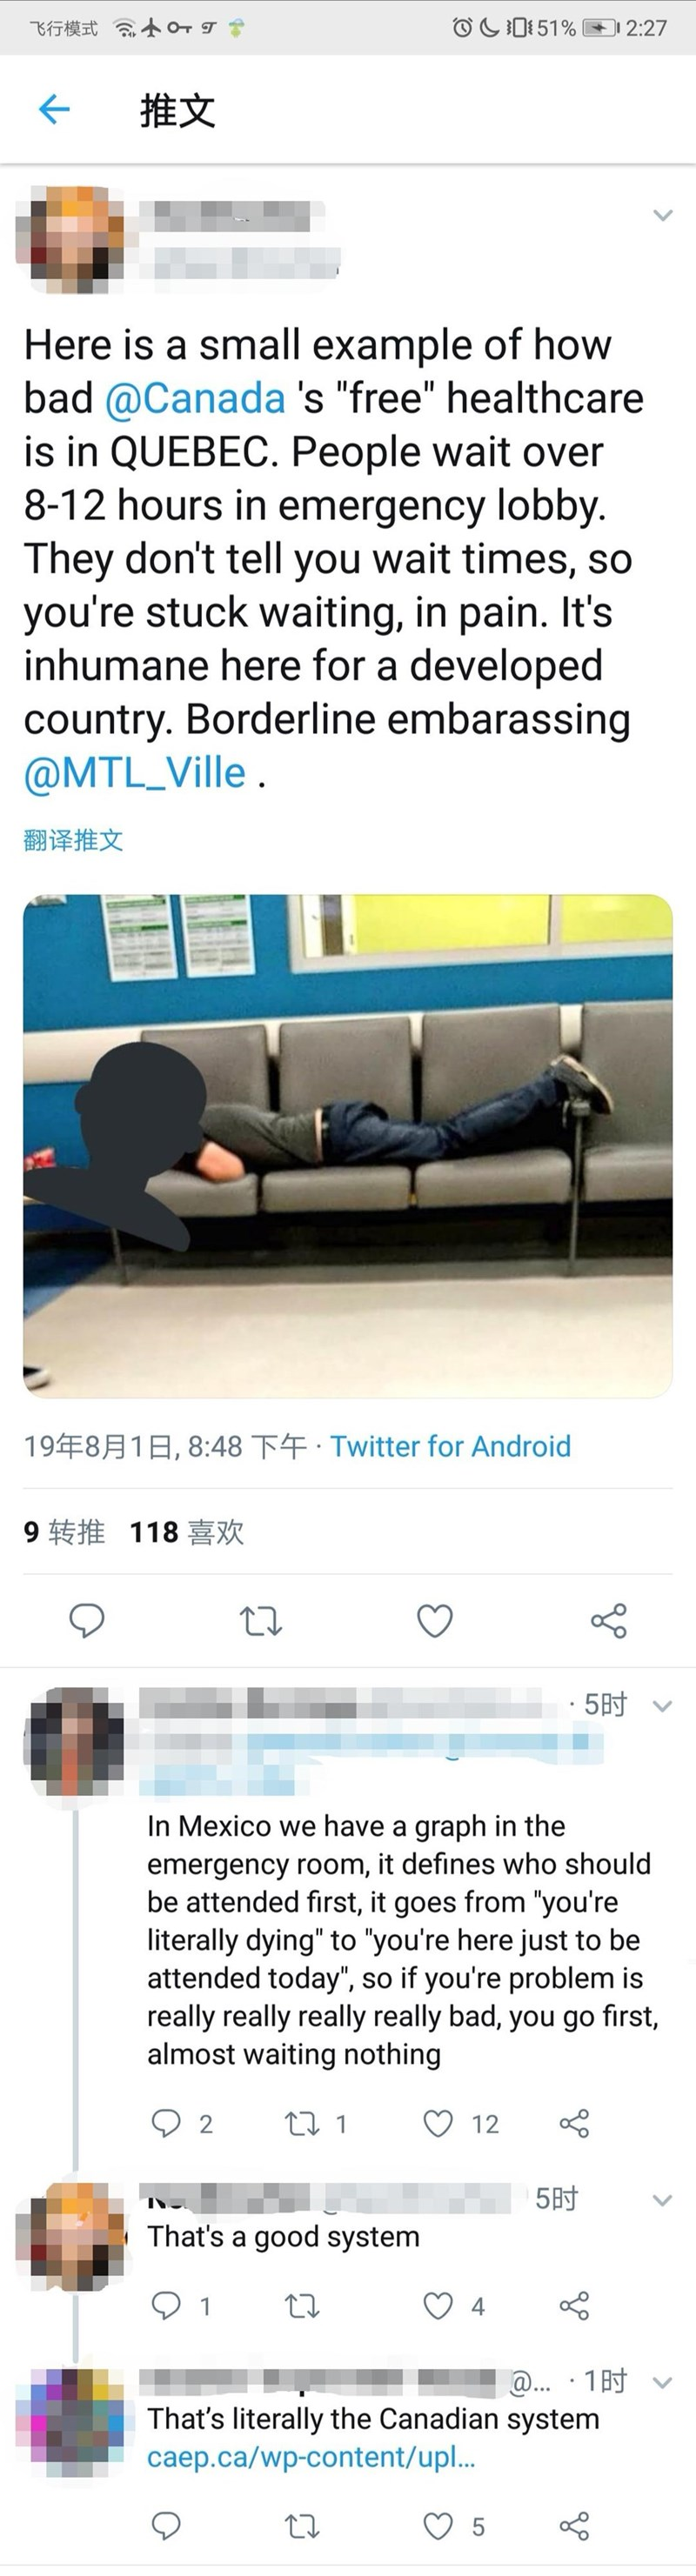 """Product - 飞行模式 士99字 2:27 推文 帶: Here is a small example of how bad @Canada 's """"free"""" healthcare is in QUEBEC. People wait over 8-12 hours in emergency lobby. They don't tell you wait times, so you're stuck waiting, in pain. It's inhumane here for a developed country. Borderline embarassing @MTL_Ville . 翻译推文 19年8月1日,8:48 下午,Twitter for Android 9转推 118喜欢 5时 In Mexico we have a graph in the emergency room, it defines who should be attended first, it goes from """"you're literally dying"""" to """"you're here"""